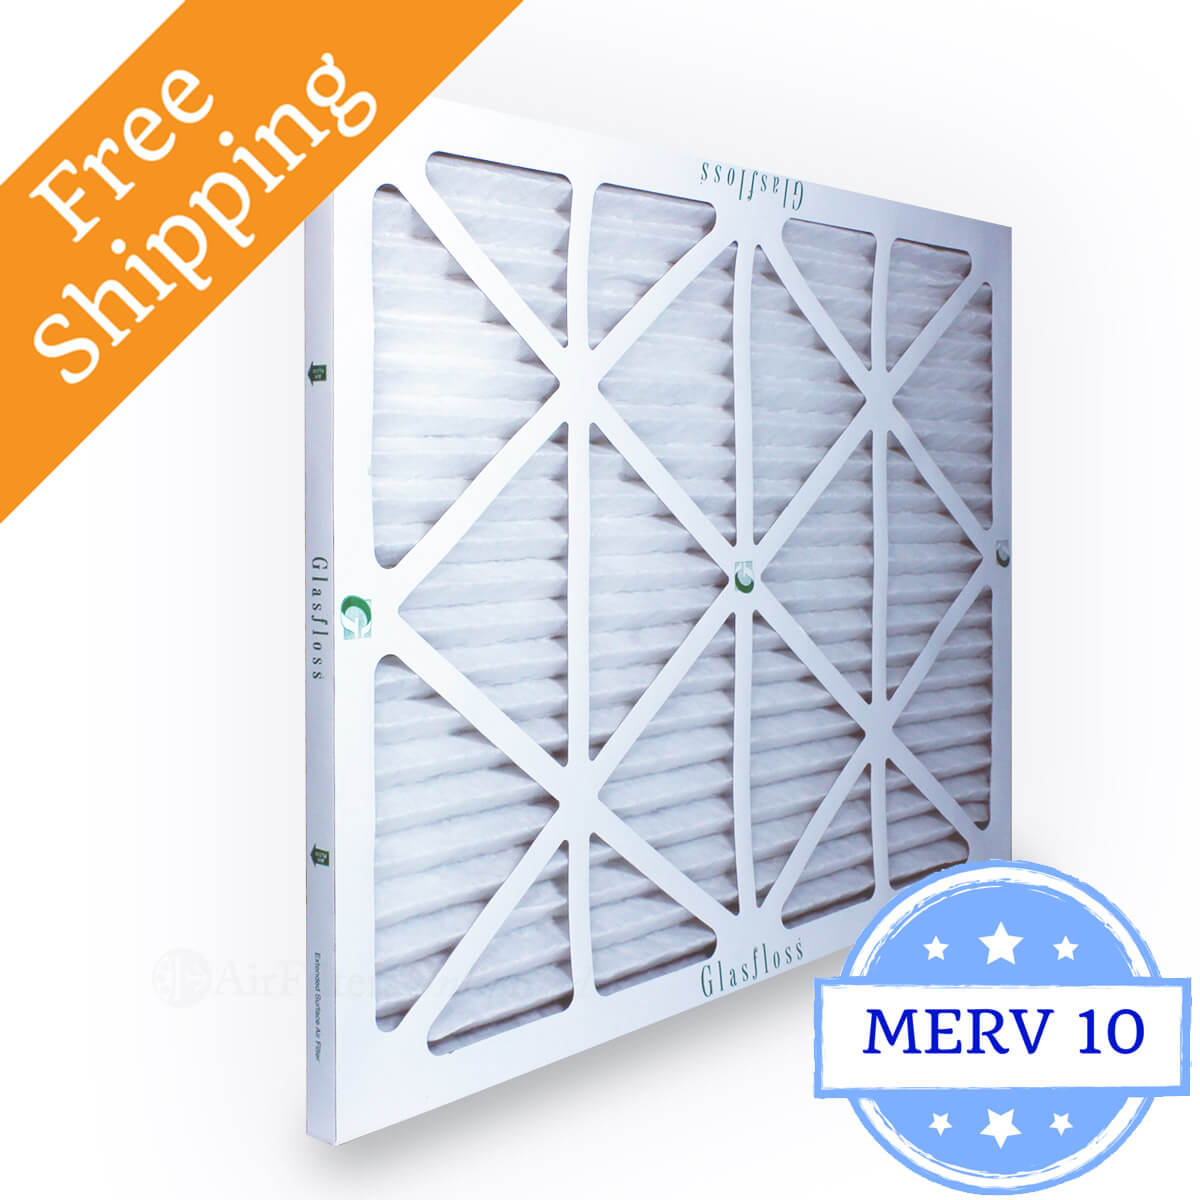 Glasfloss 10x20x1 Air Filter ZL Series